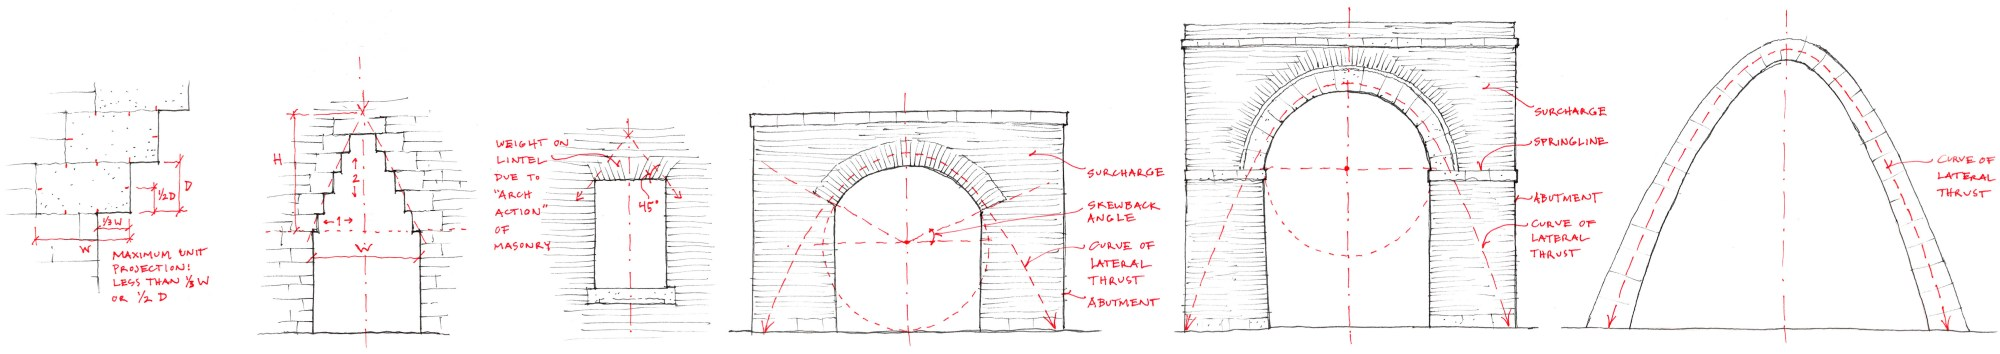 hight resolution of stone spans the furthest as an arch which utilizes its compressive strength there are many forms of arches the earliest development from post and lintel